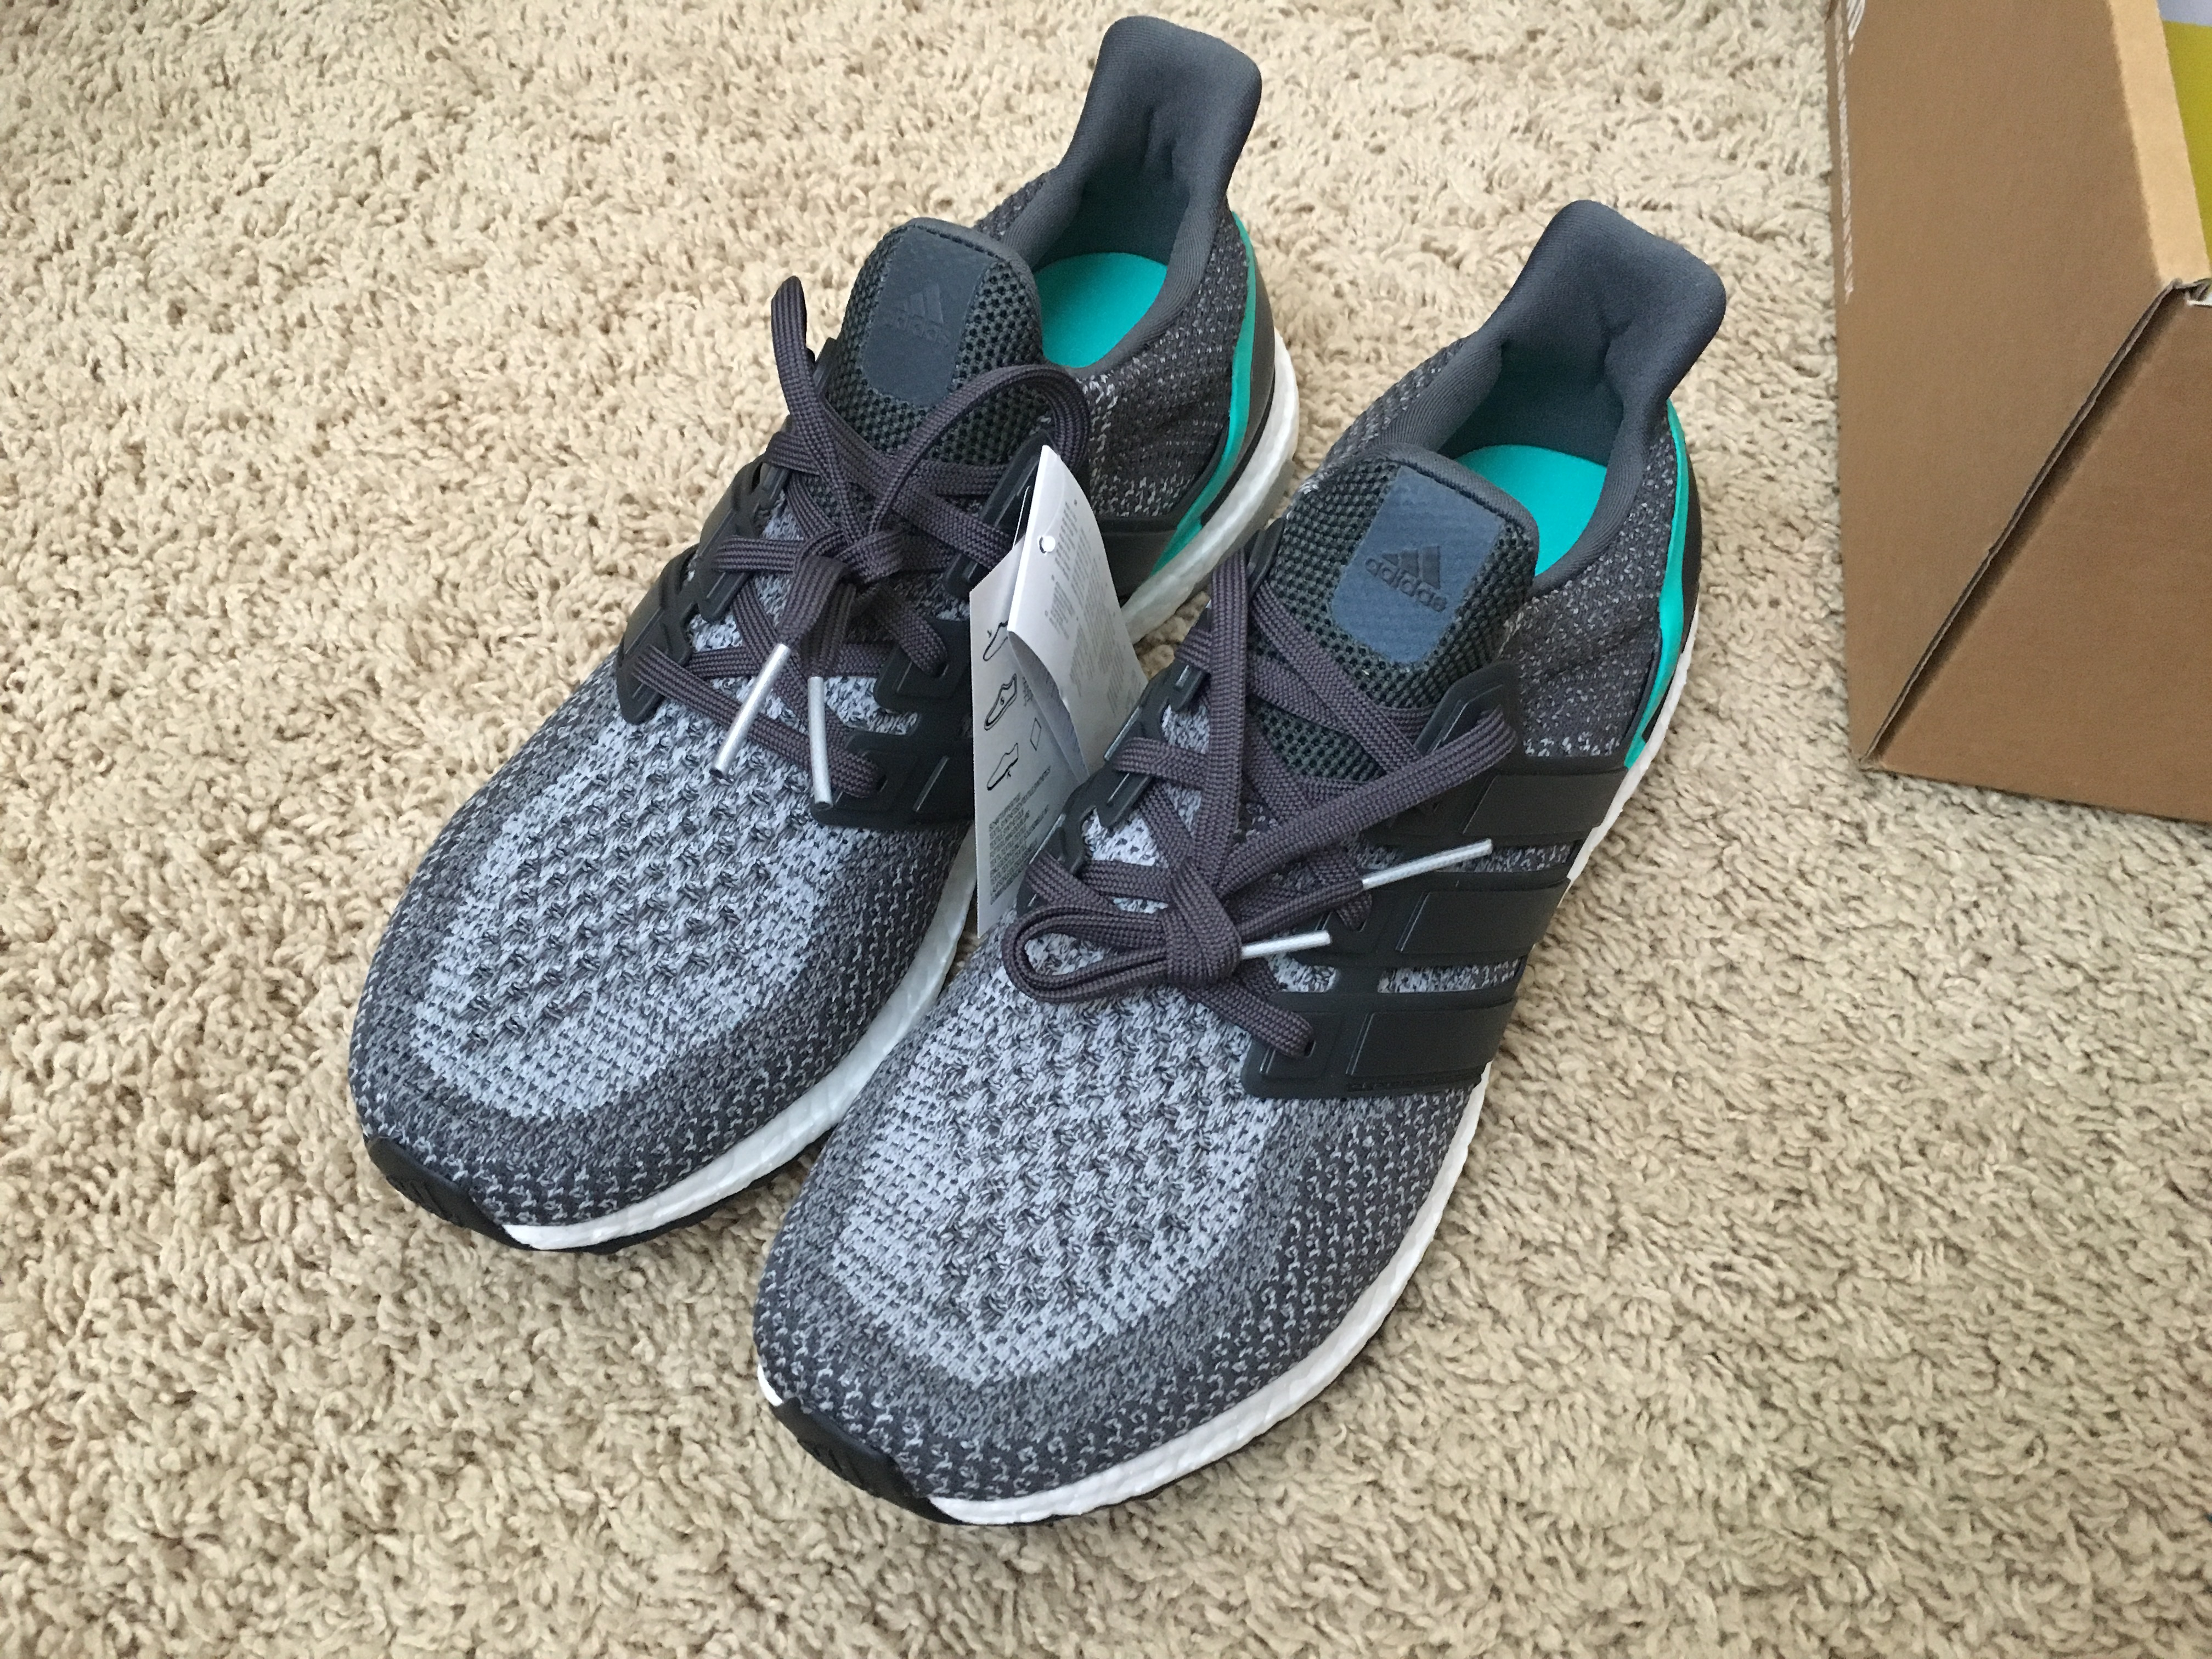 25d1ea8825d Adidas Ultra Boost Shock Mint Size 10.5 - Low-Top Sneakers for Sale ...